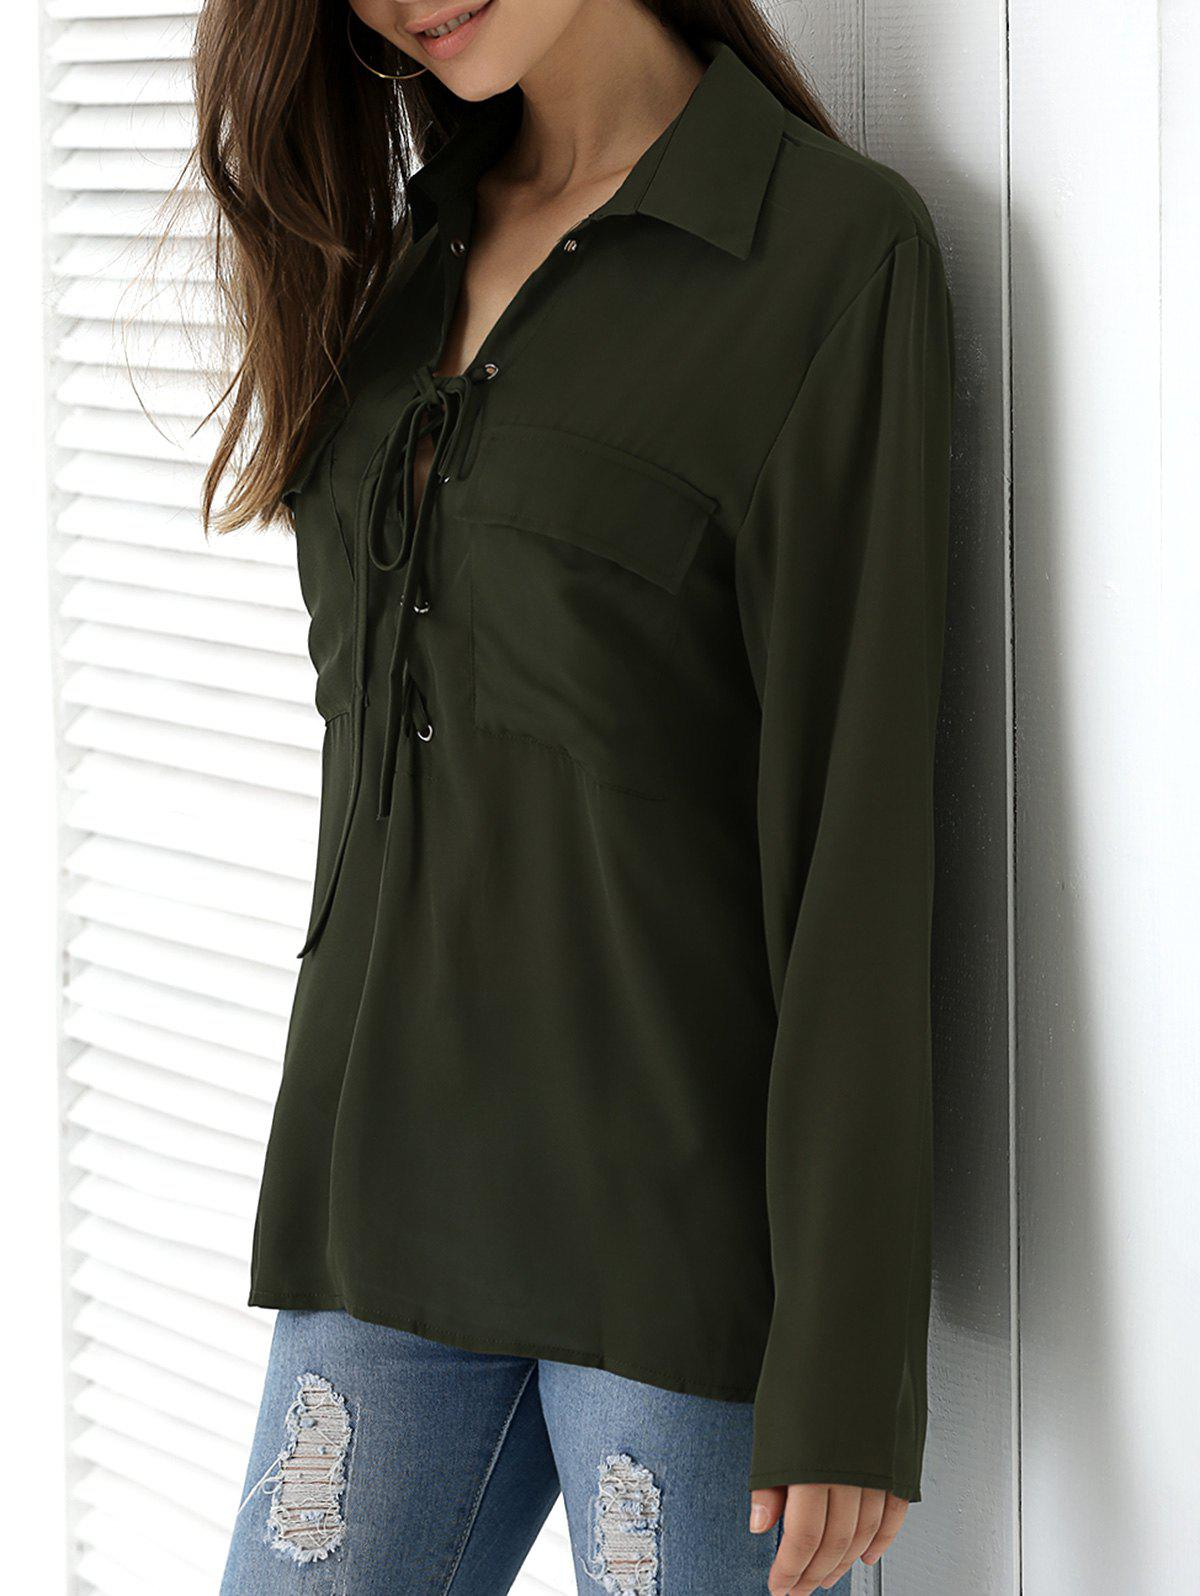 Pocket Design Lace Up Crossover Shirt - ARMY GREEN 3XL